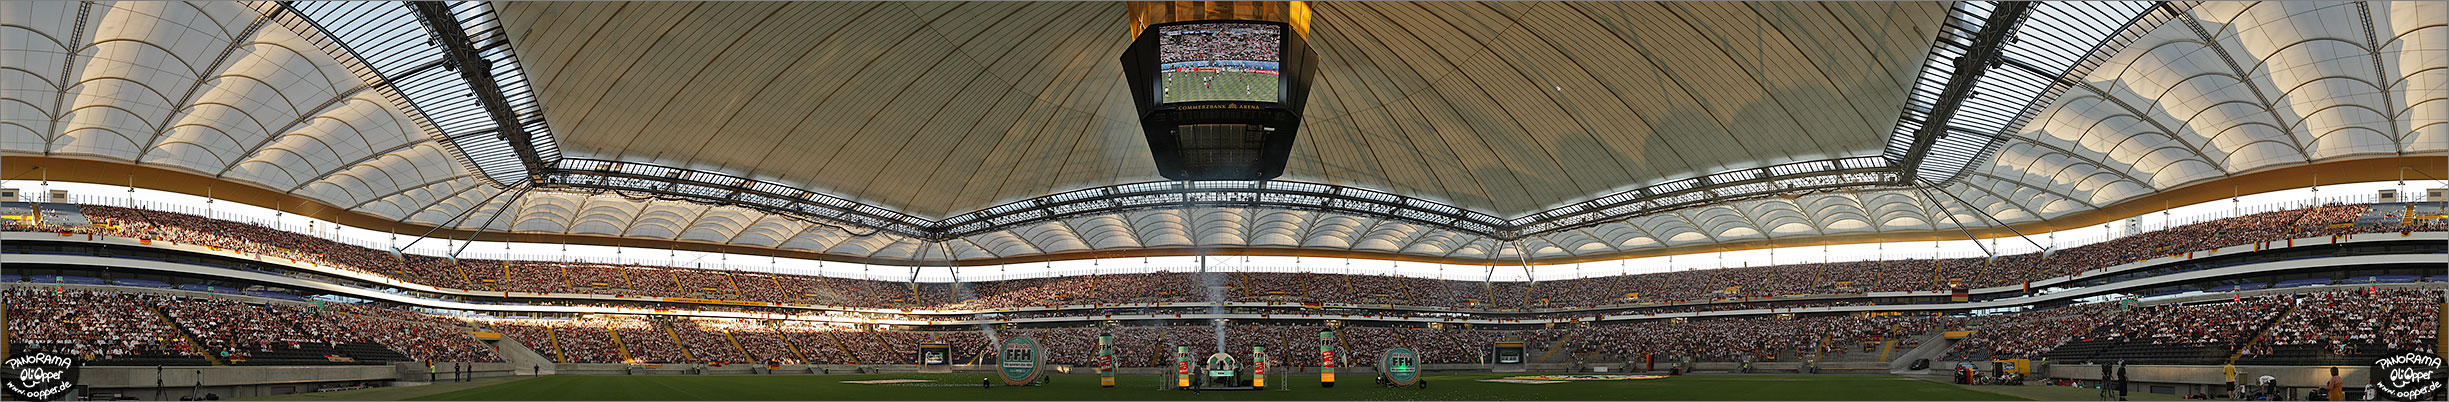 Panorama Frankfurt - Commerzbank Arena - p288 - (c) by Oliver Opper